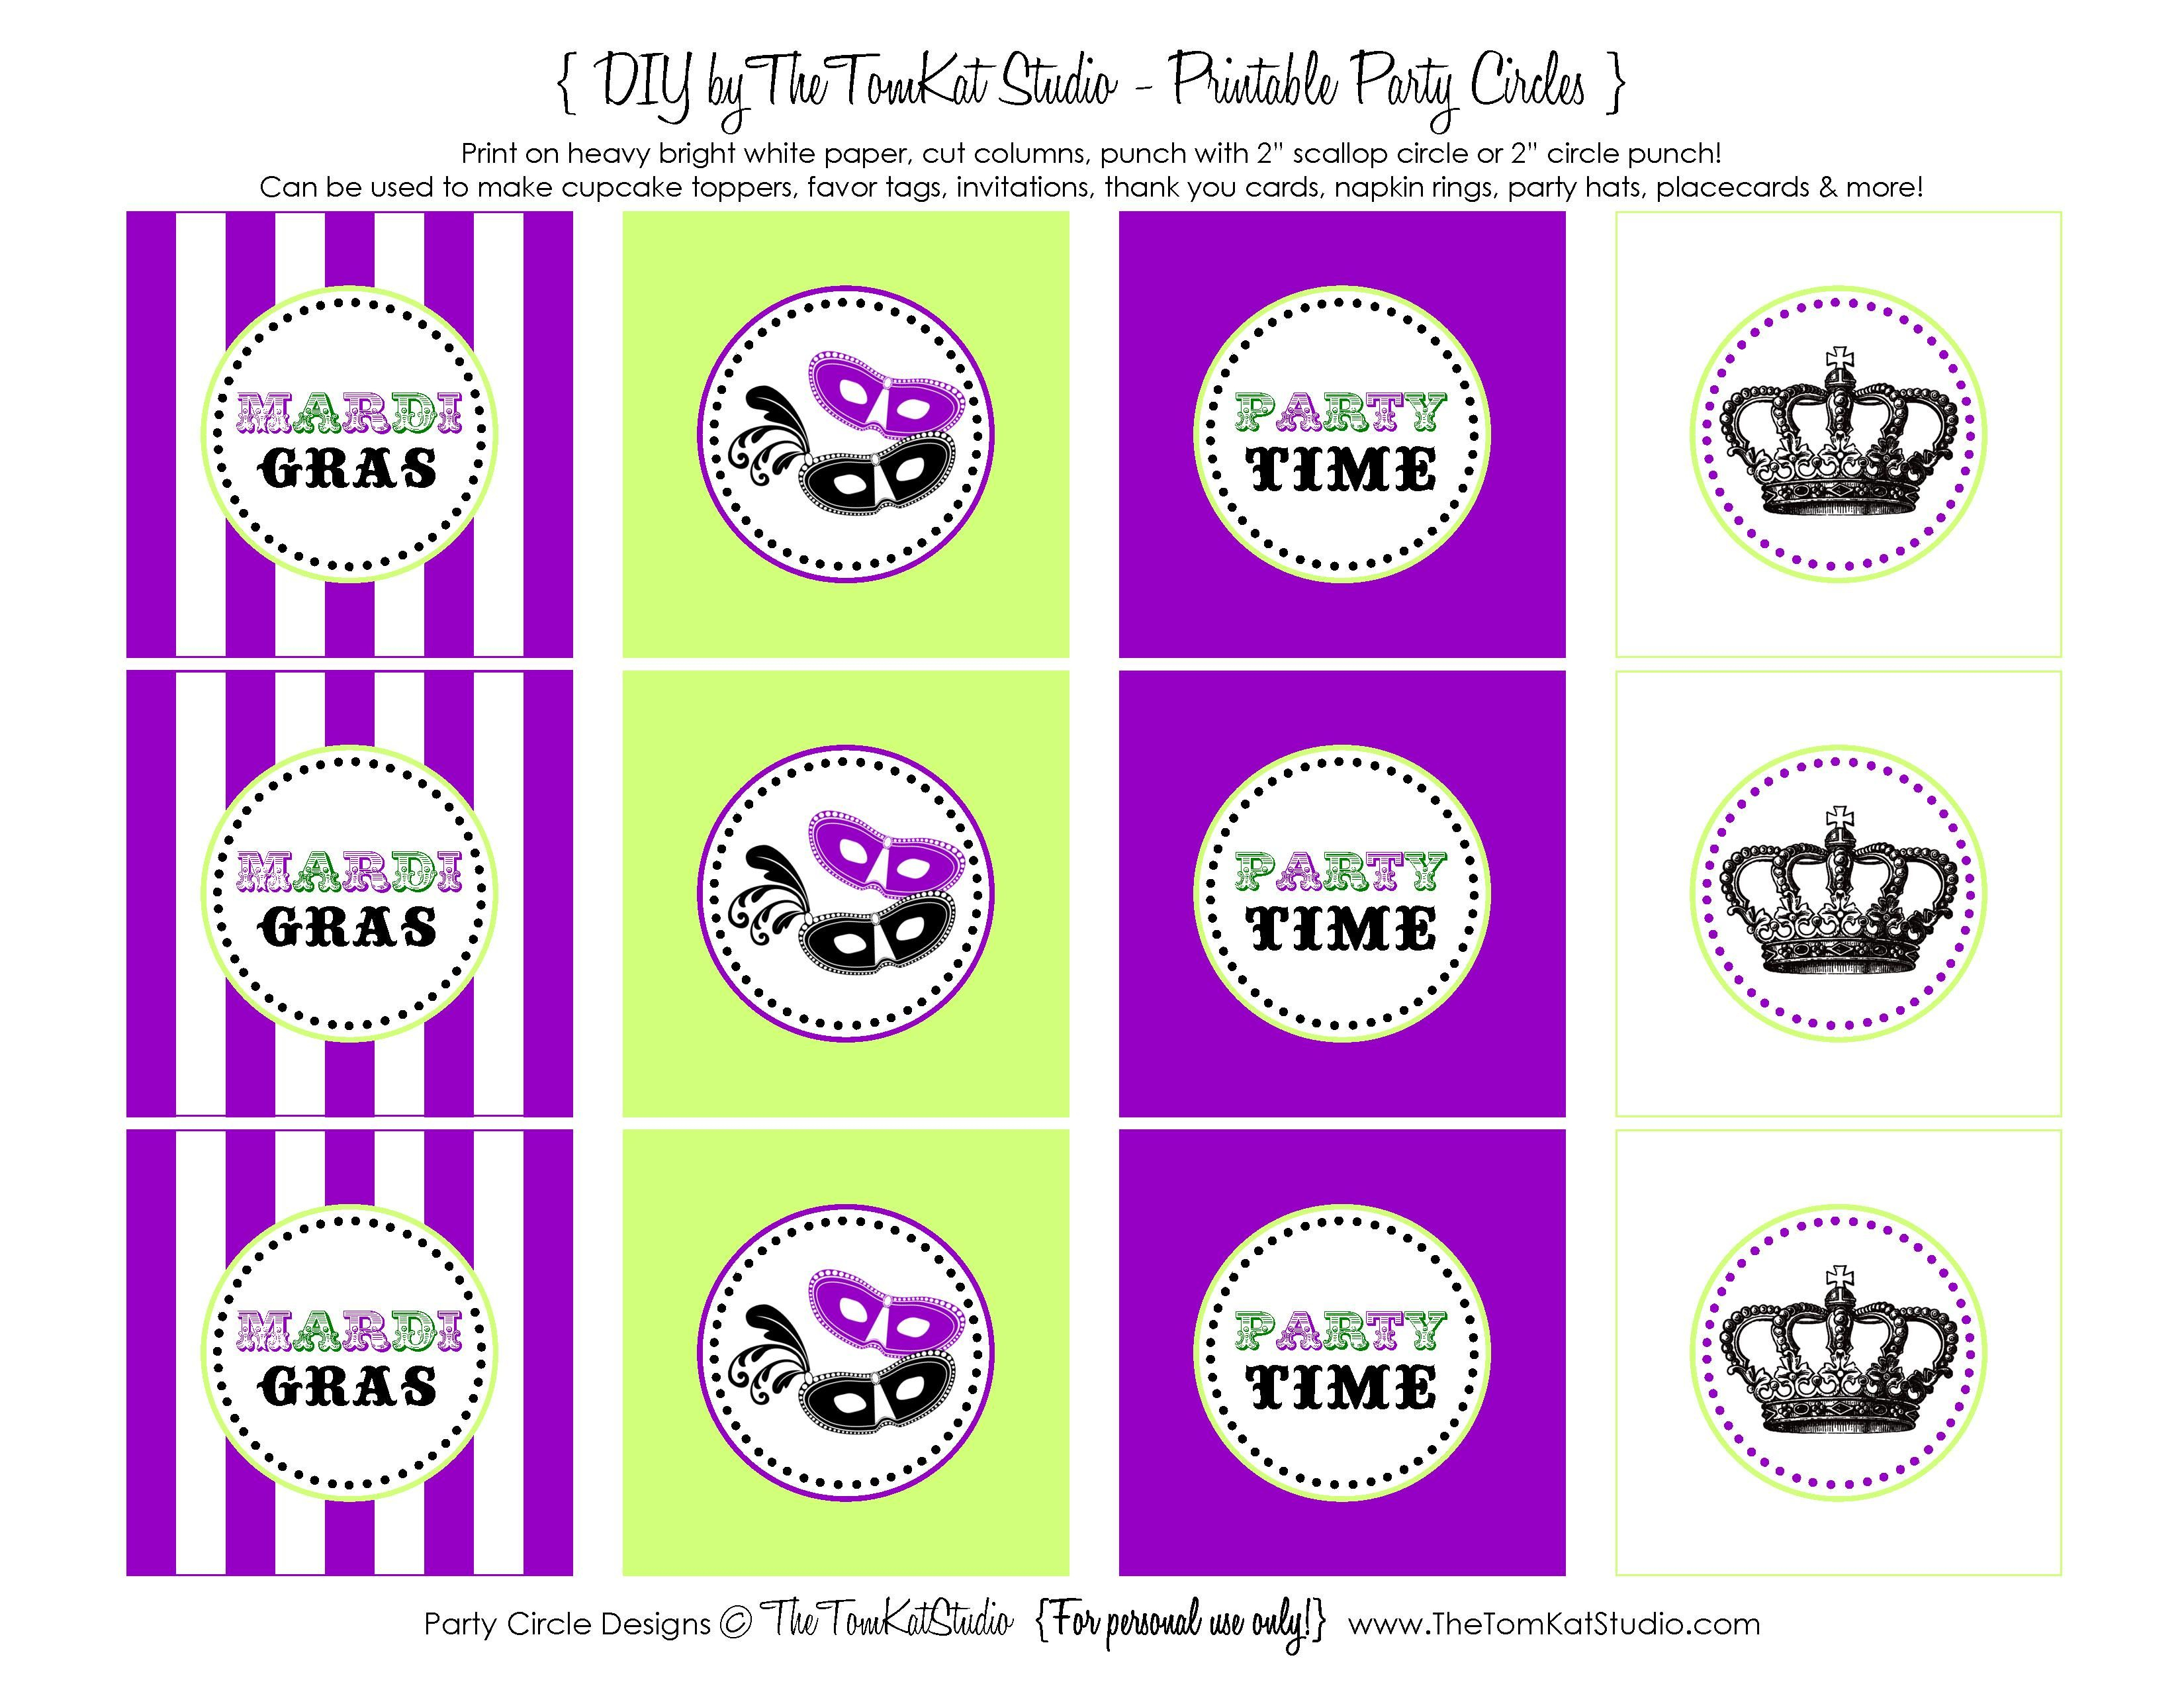 Free Printable} Mardi Gras Party Circles | Mardi Gras Party | Mardi - Free Printable Party Circles